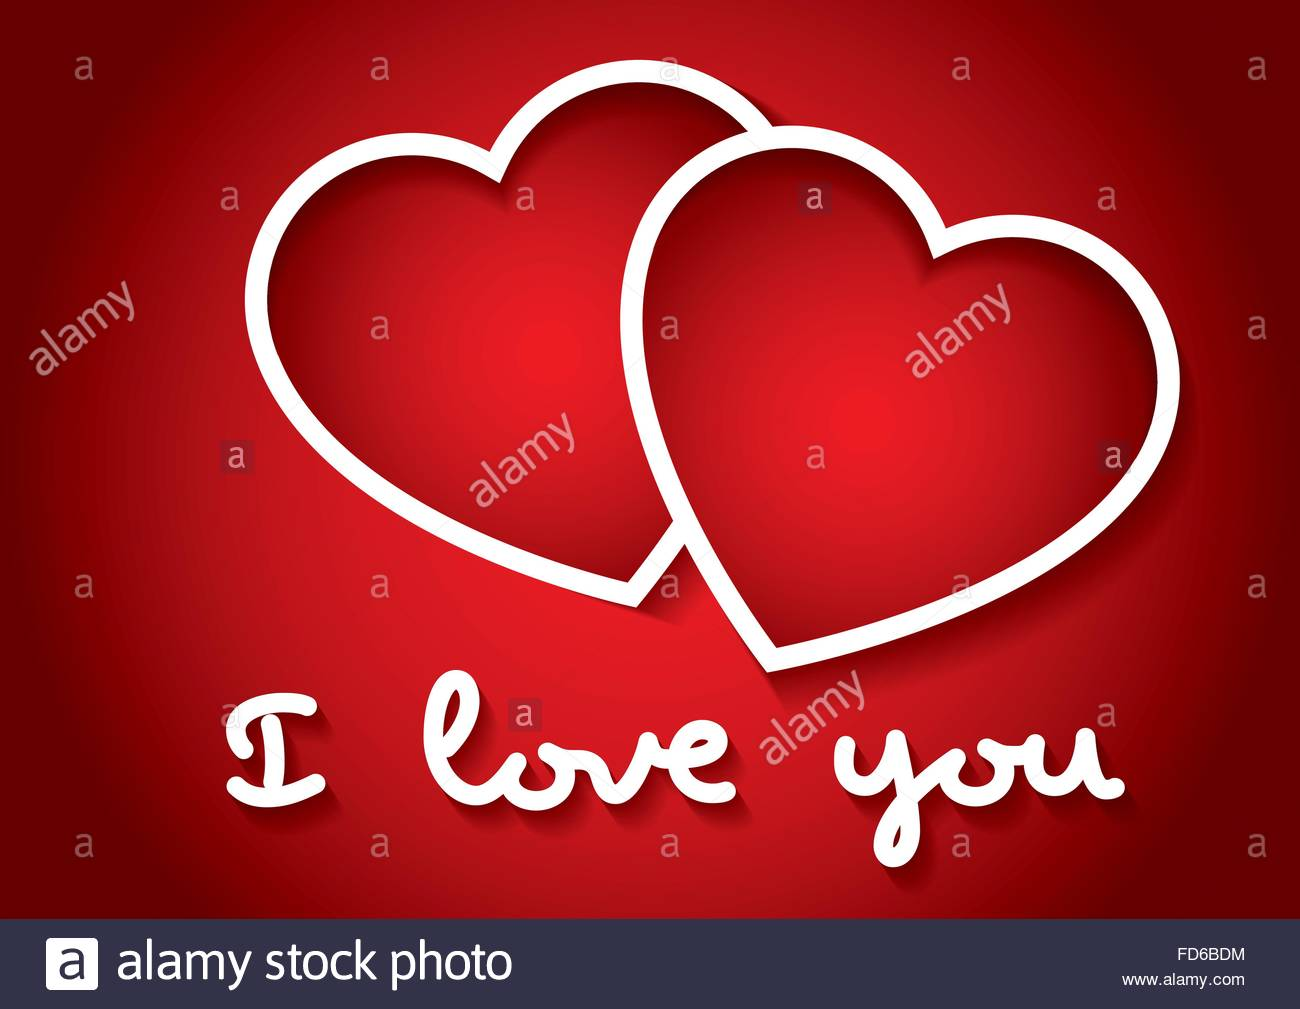 I Love You Words With Two Hearts In Red Valentines Day Love Stock